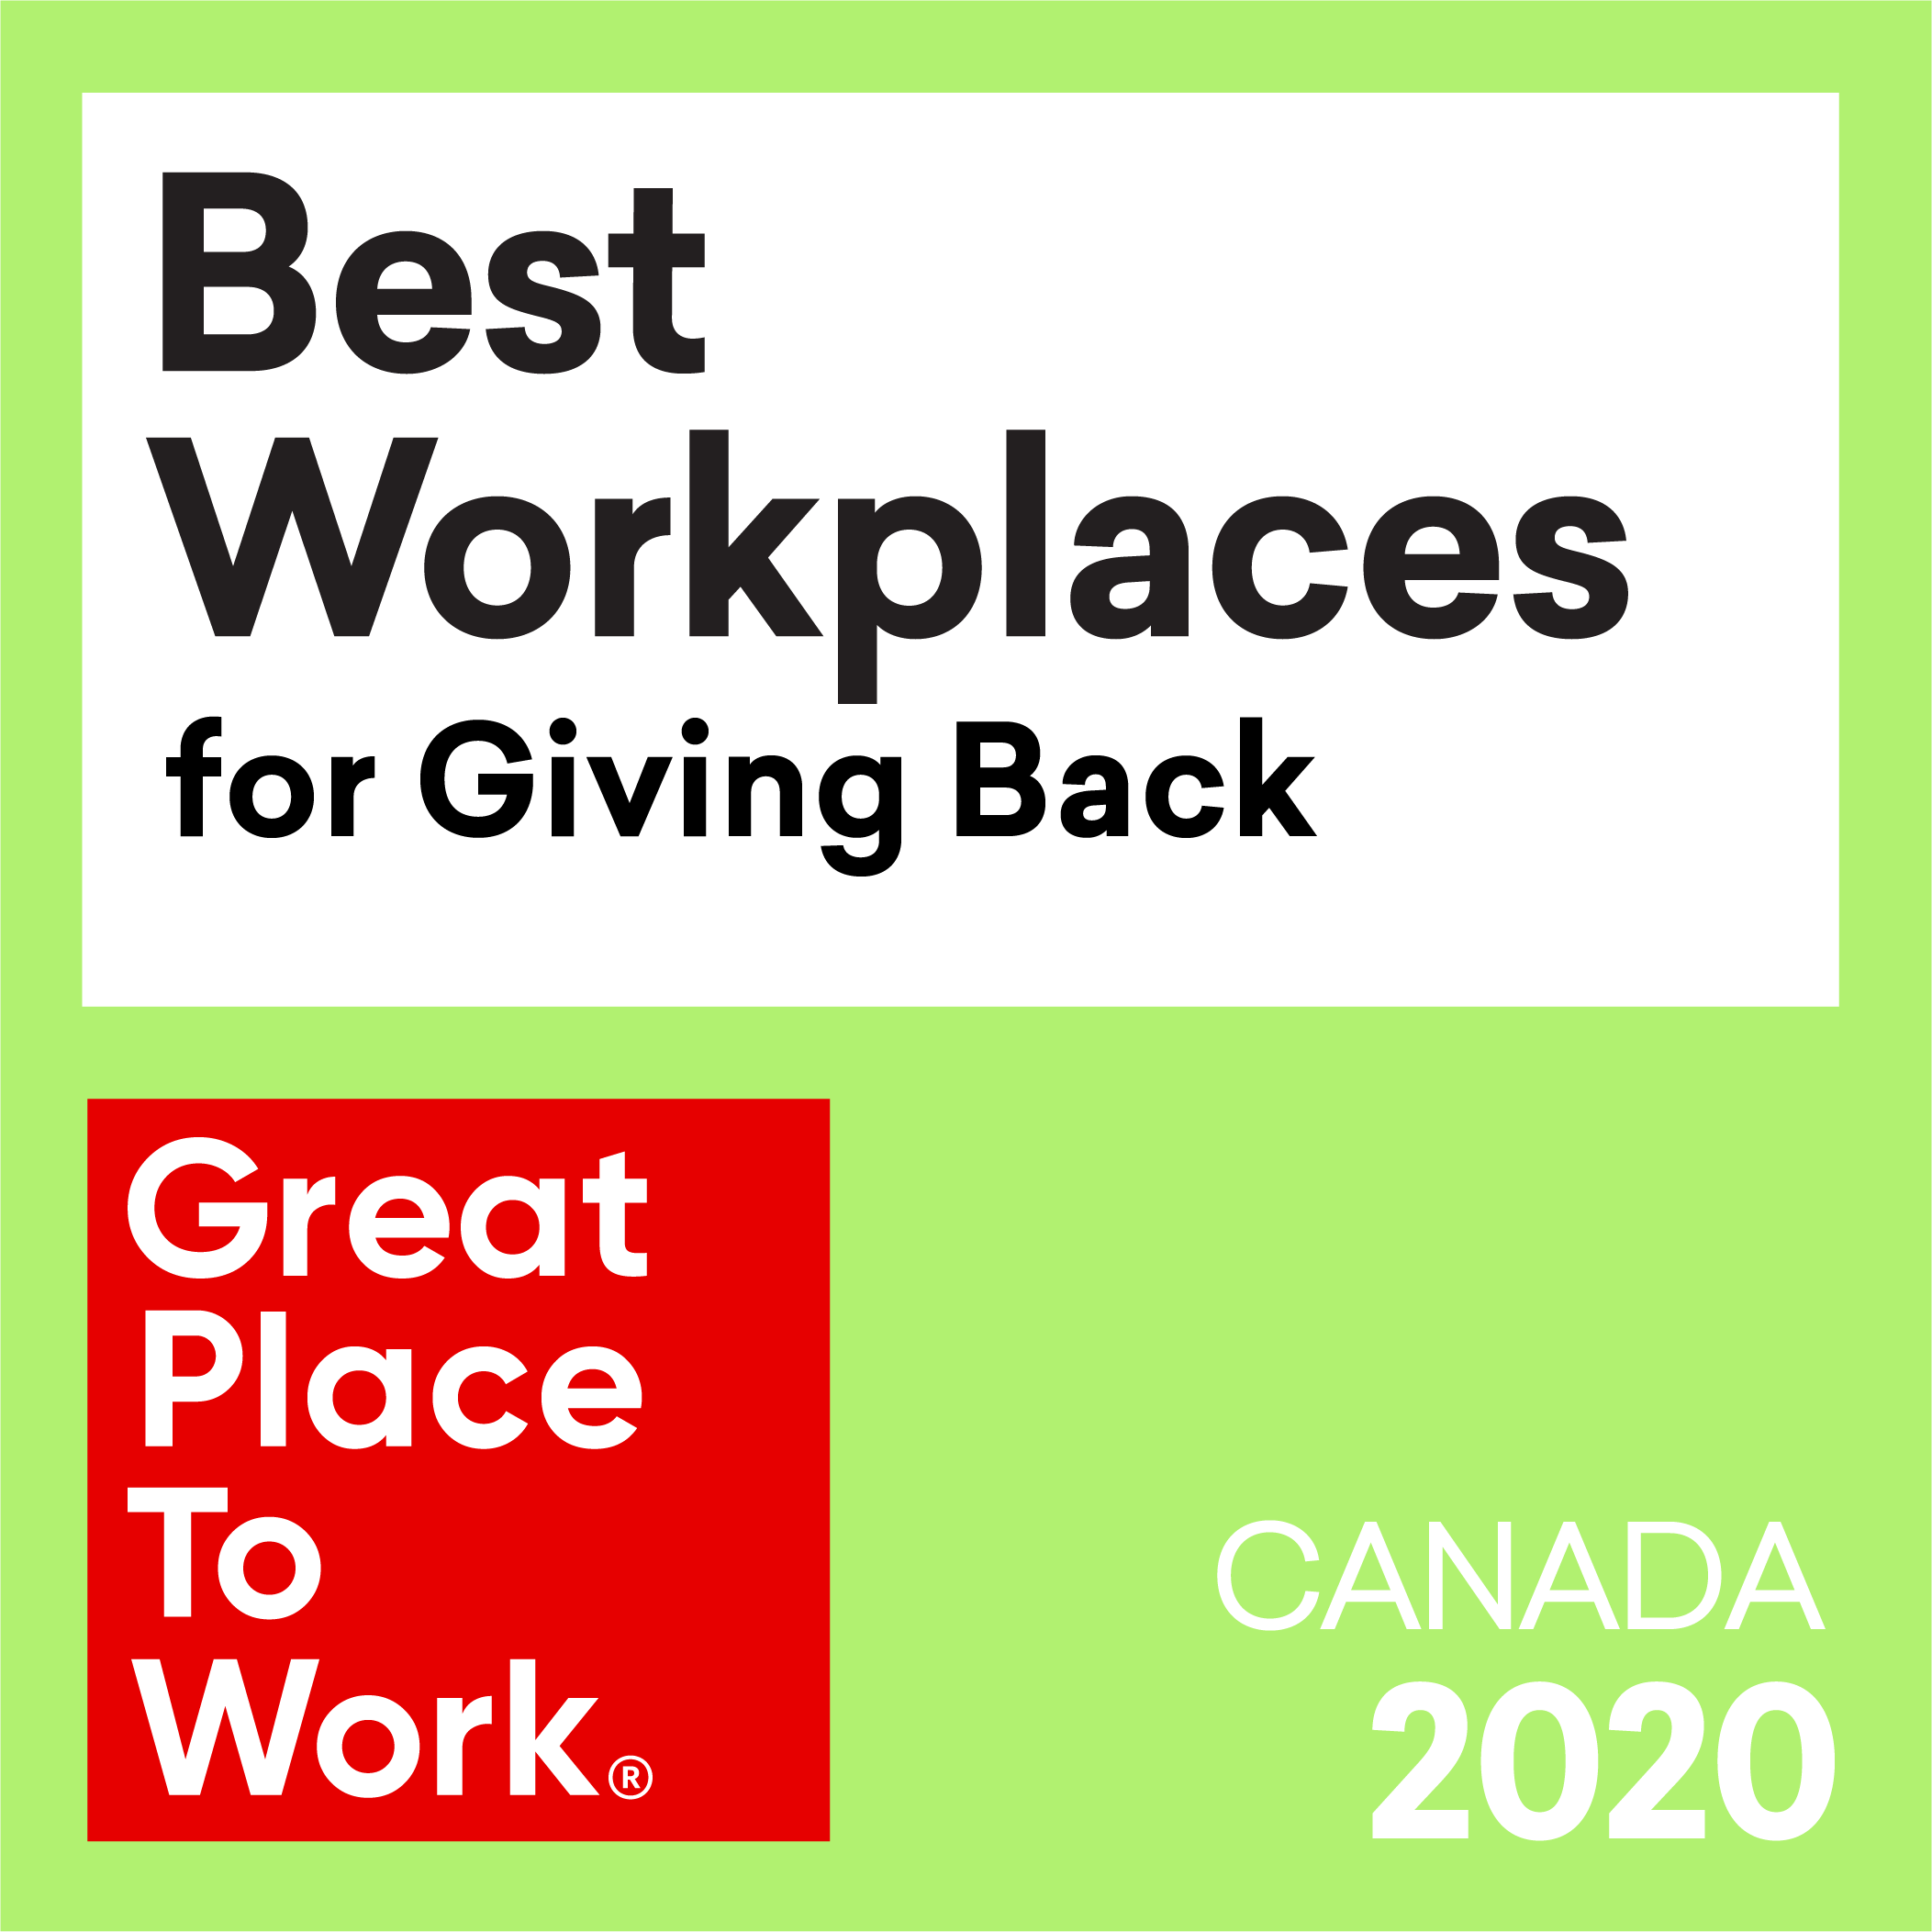 Best Workplaces for Giving Back award